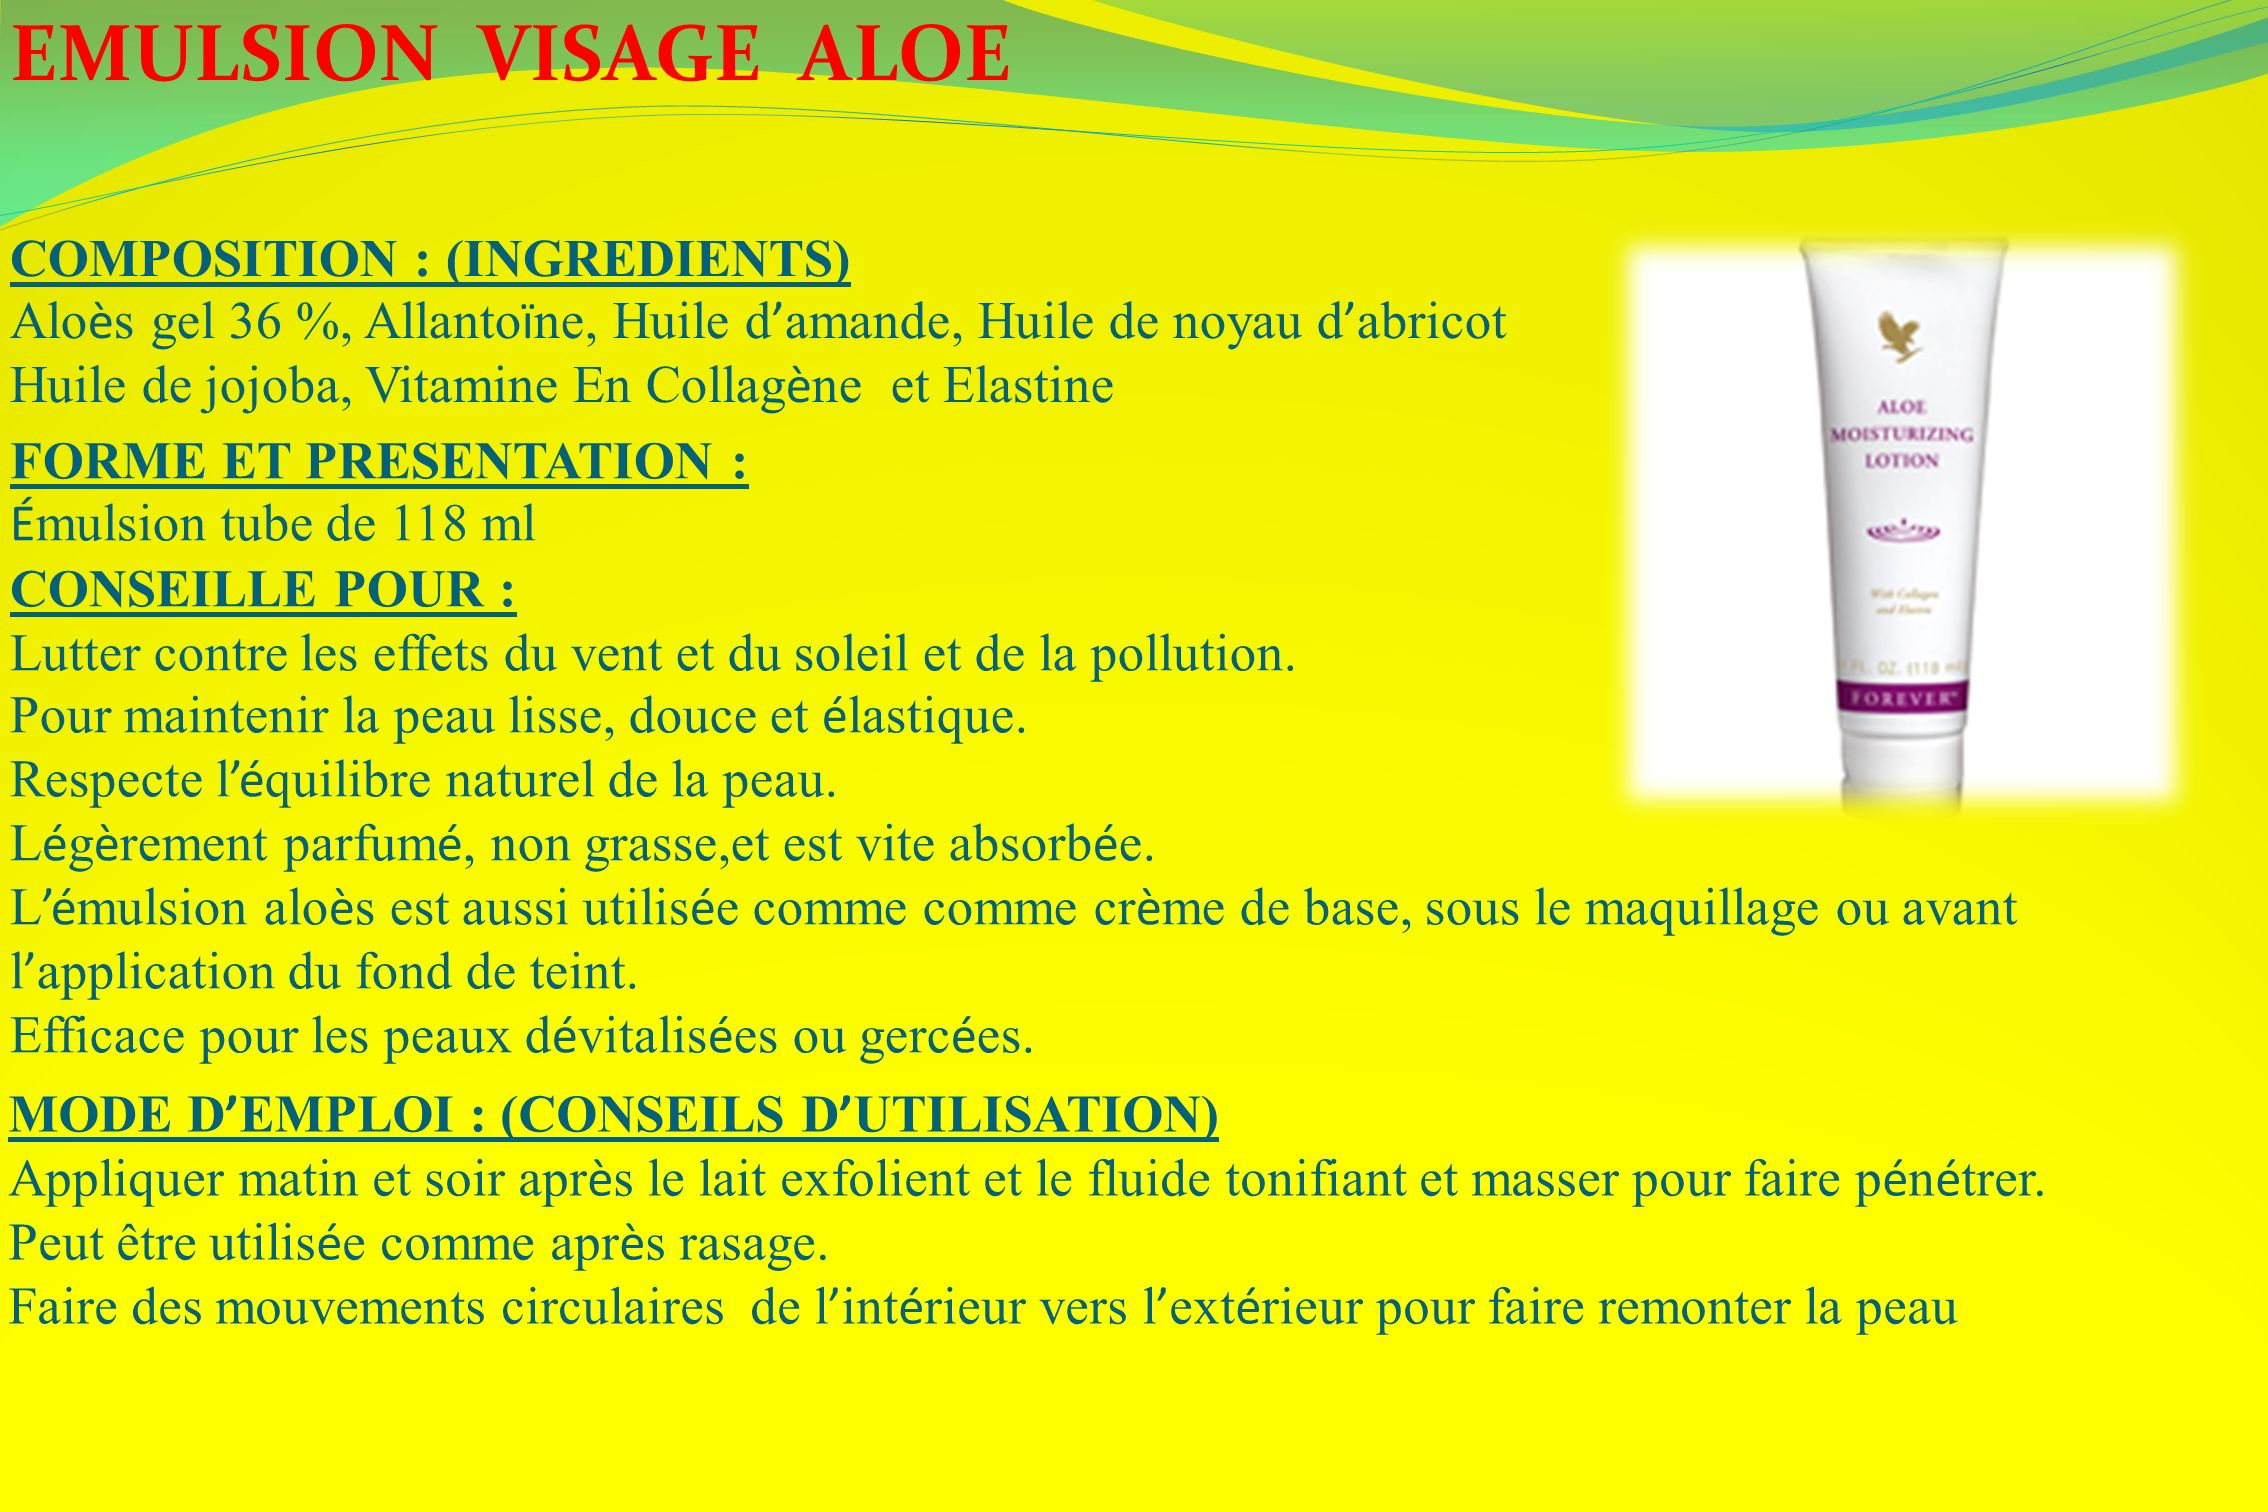 EMULSION VISAGE ALOE COMPOSITION : (INGREDIENTS)